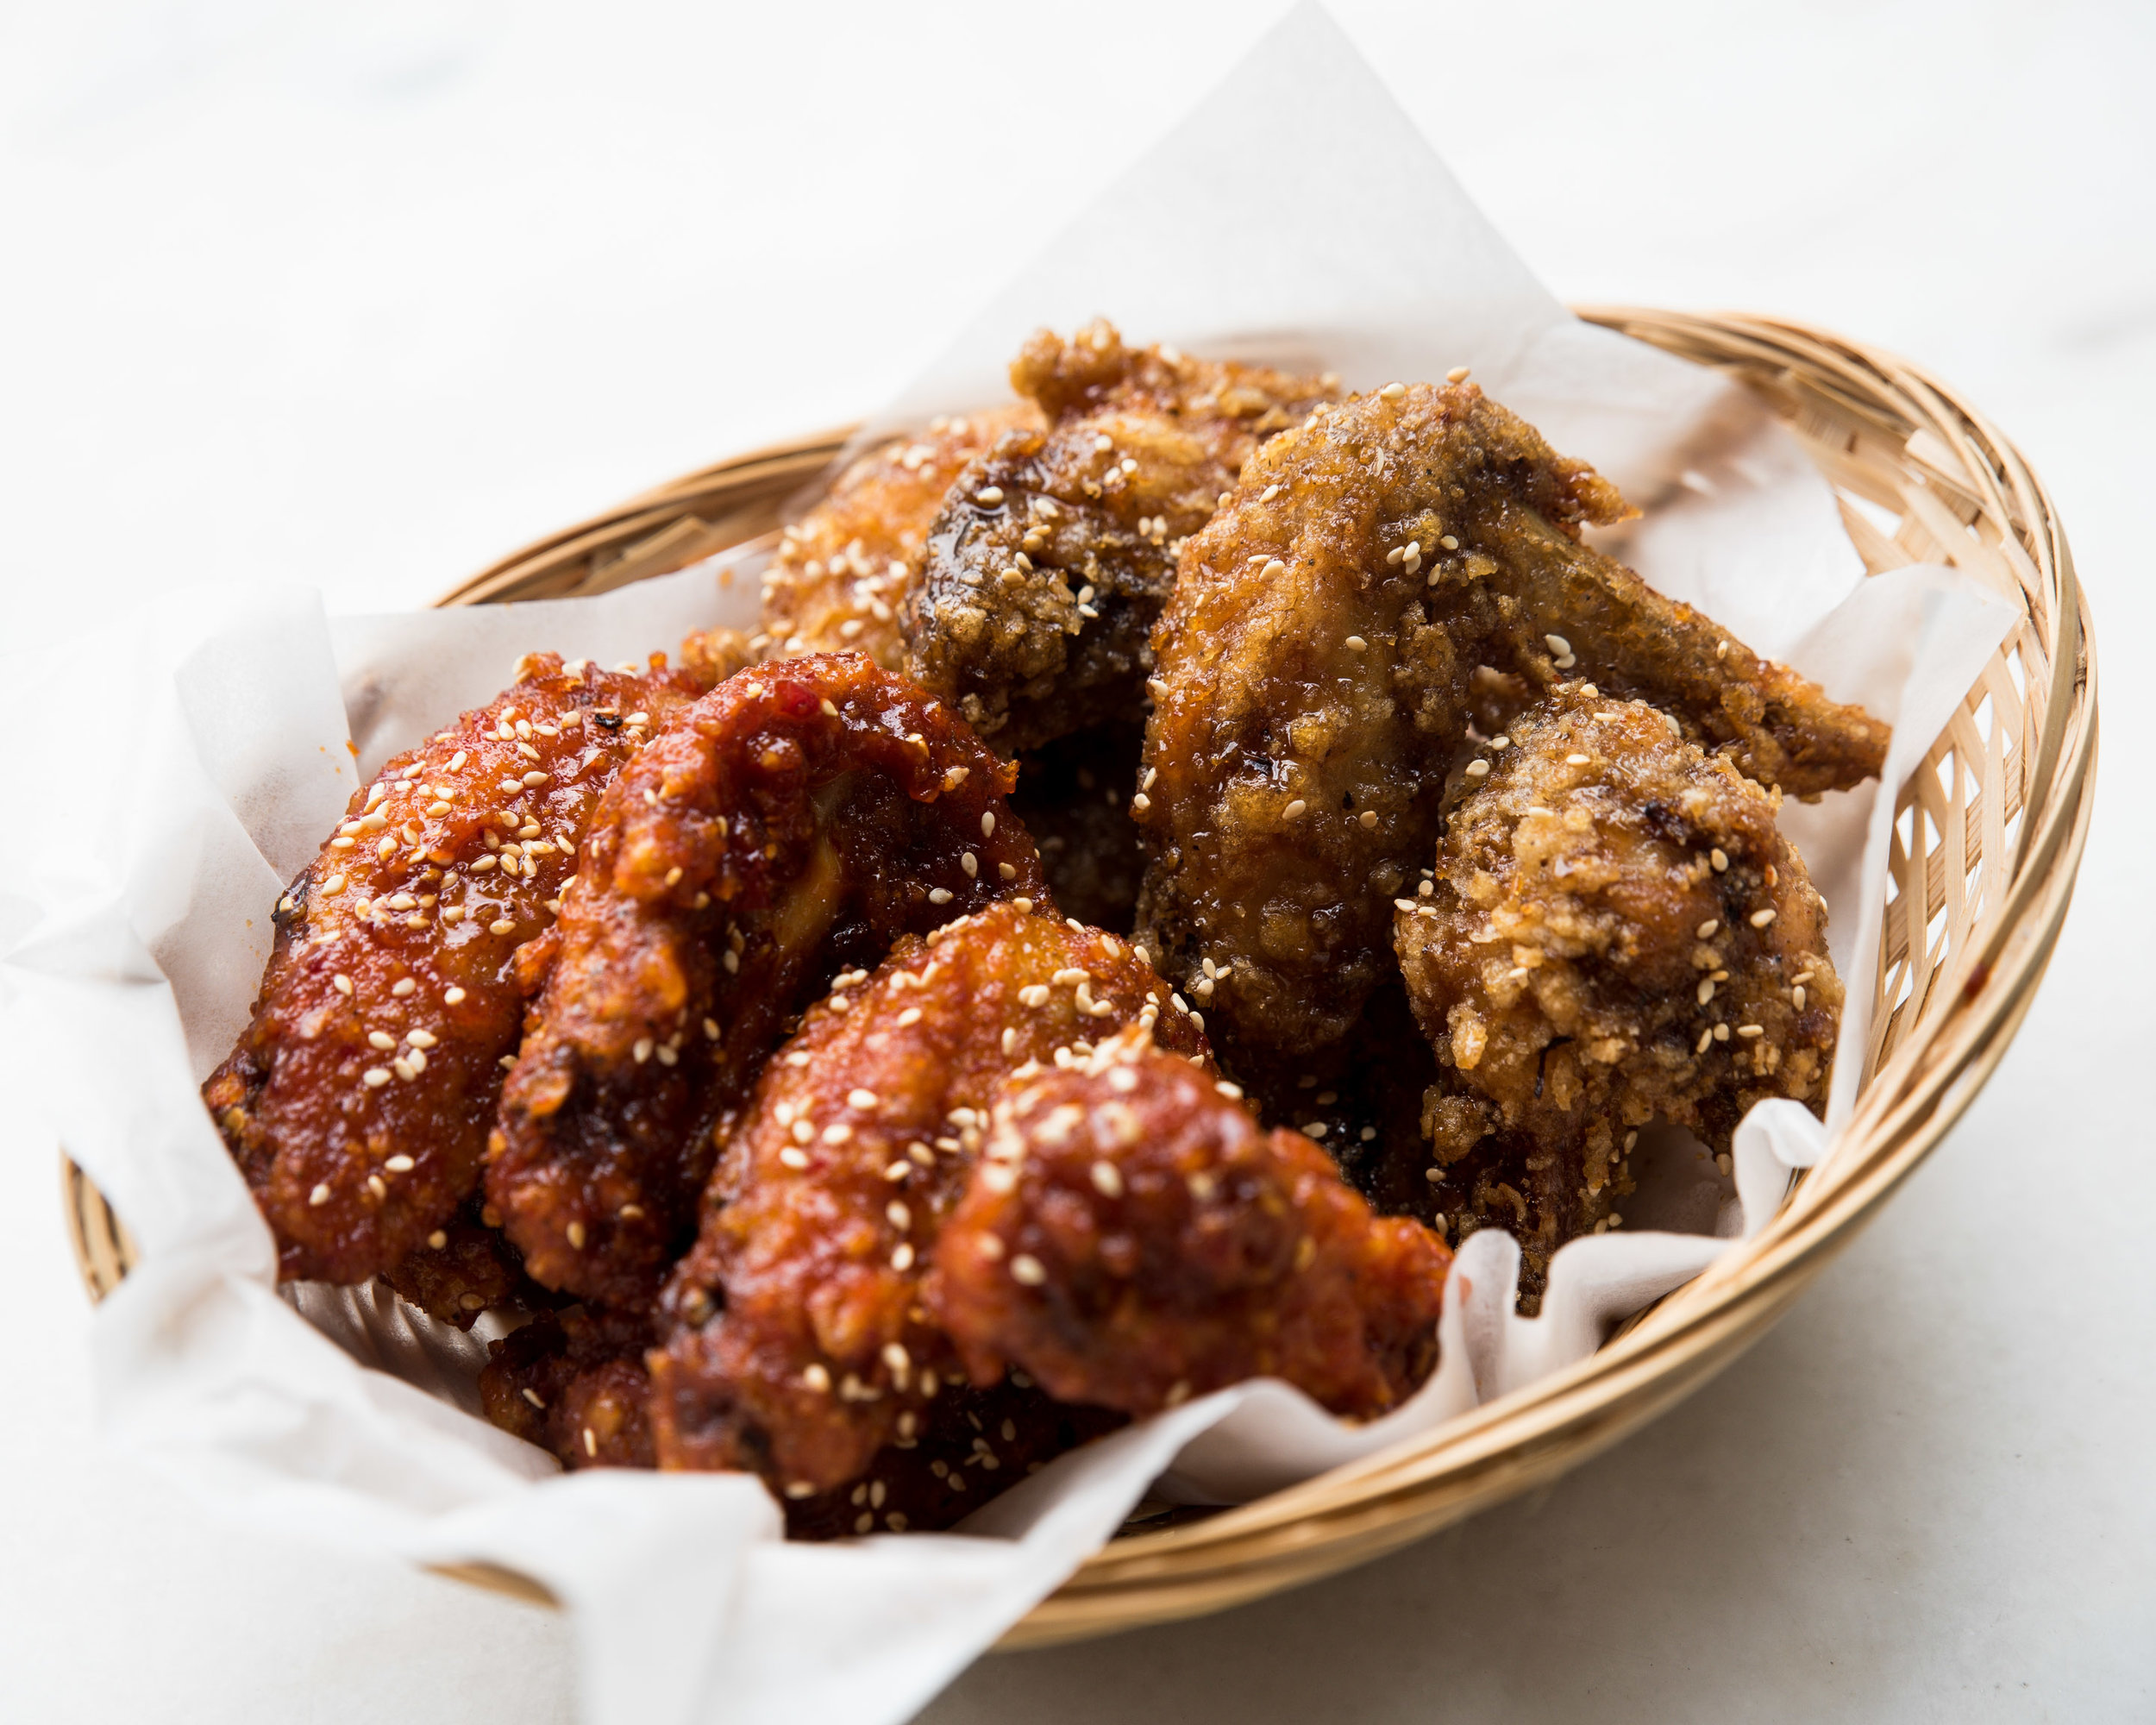 Seoul Shiok_Korean Fried Chicken_2880x2304.jpg